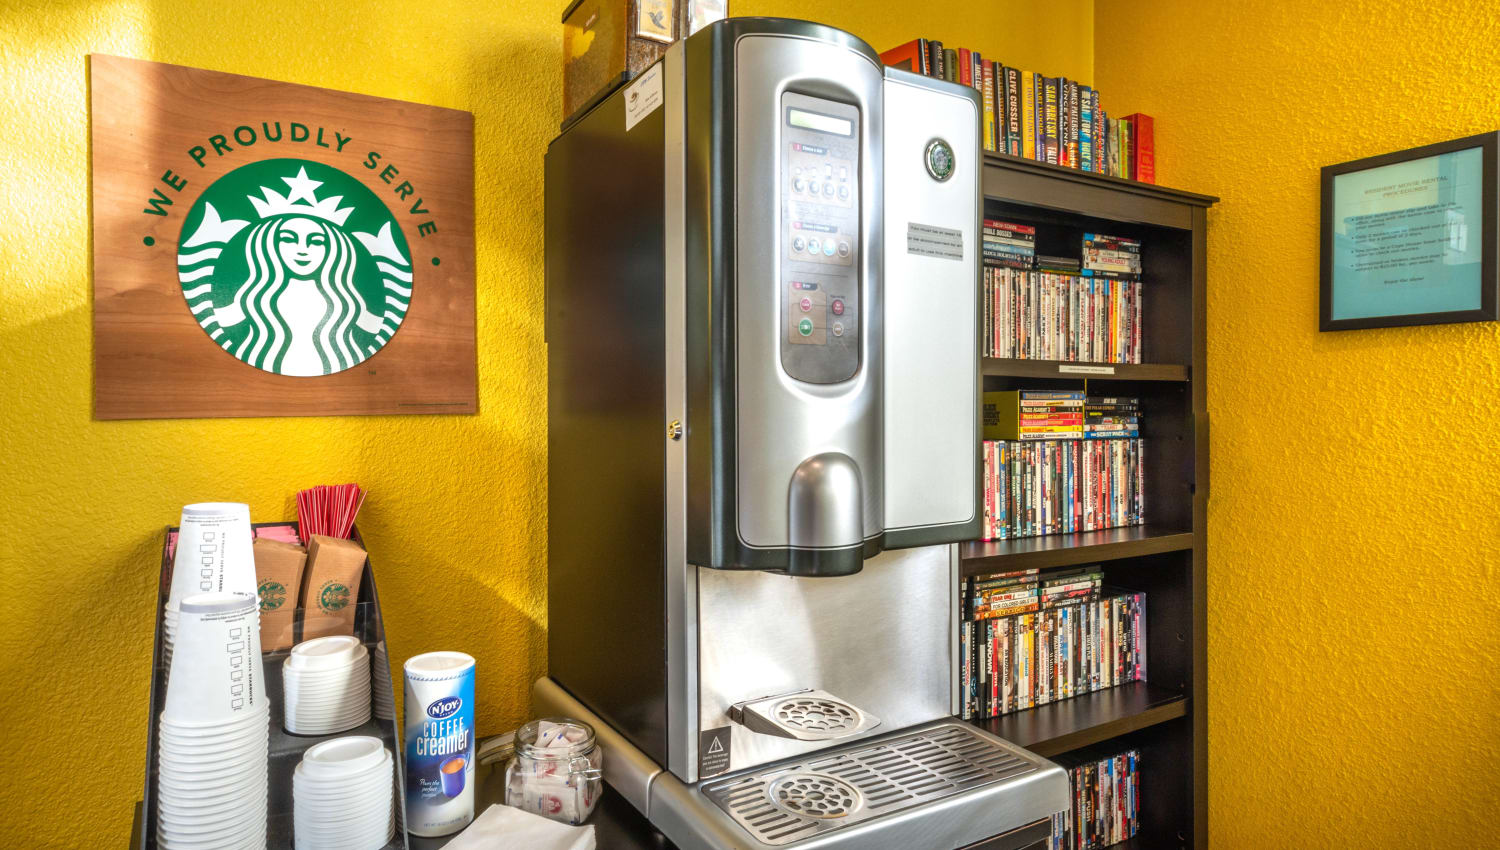 Starbucks station in the clubhouse at Cape House in Jacksonville, Florida